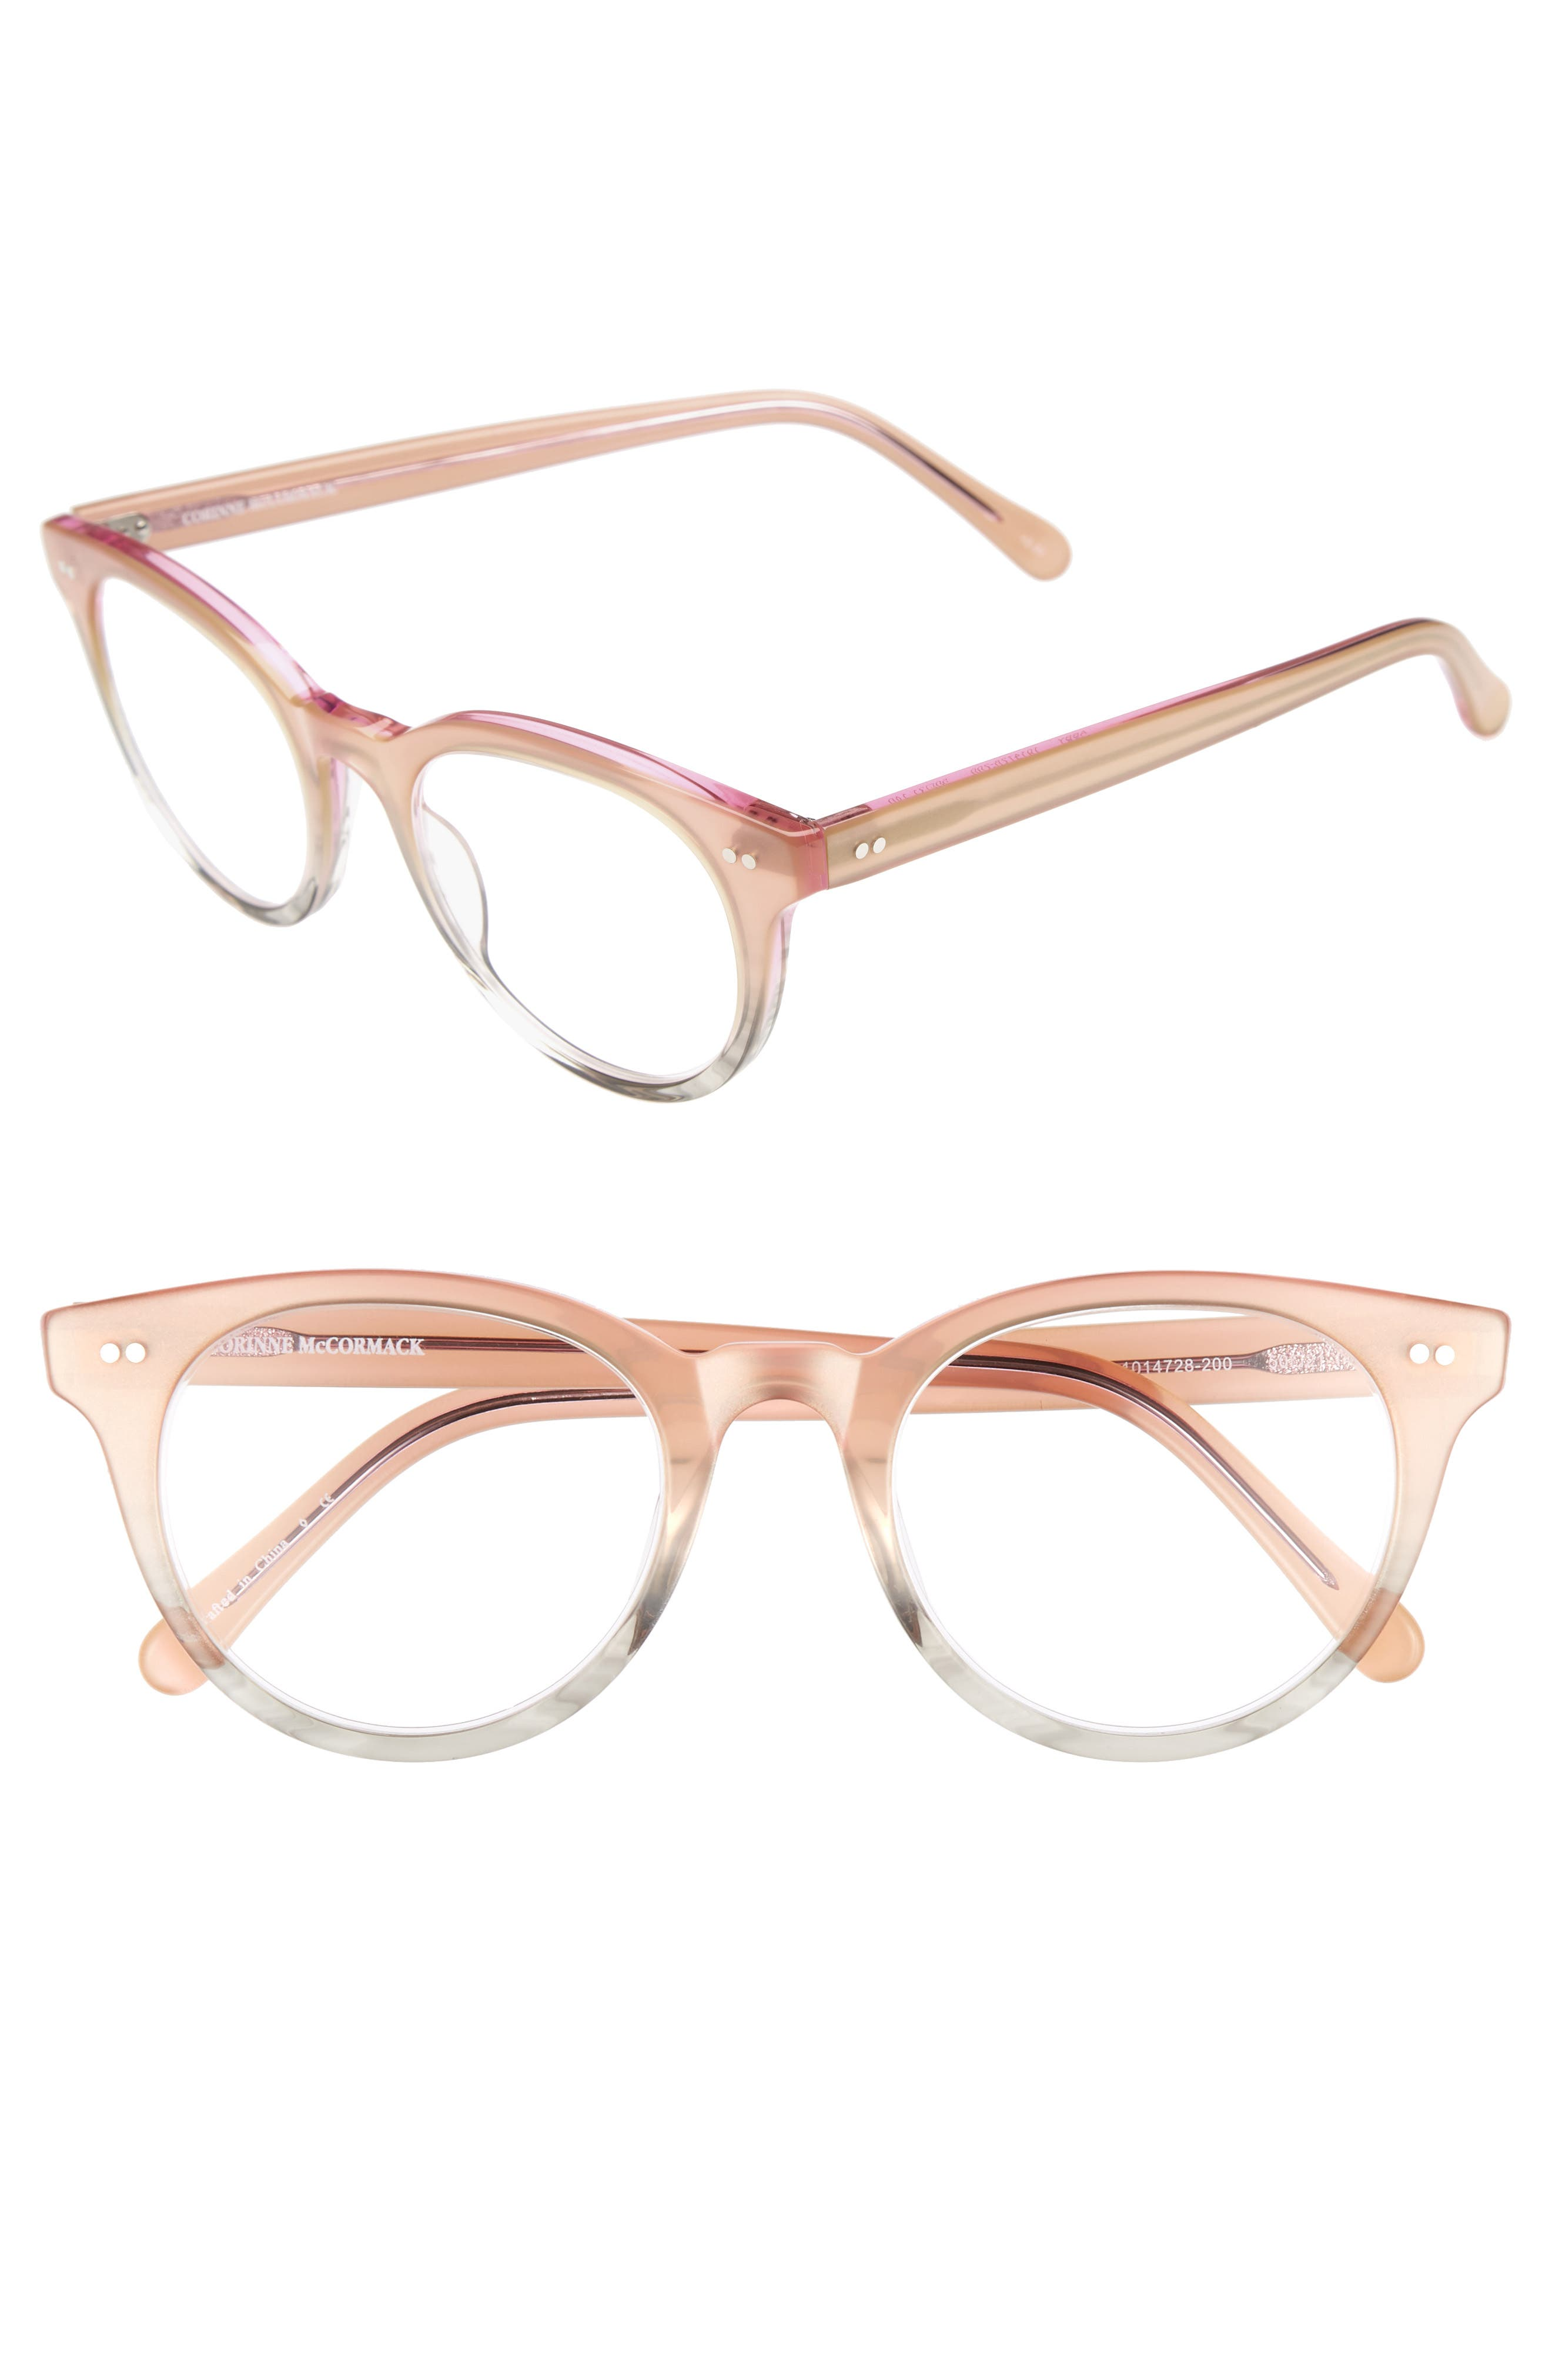 Abby 50mm Reading Glasses,                             Main thumbnail 1, color,                             Pink/ Grey